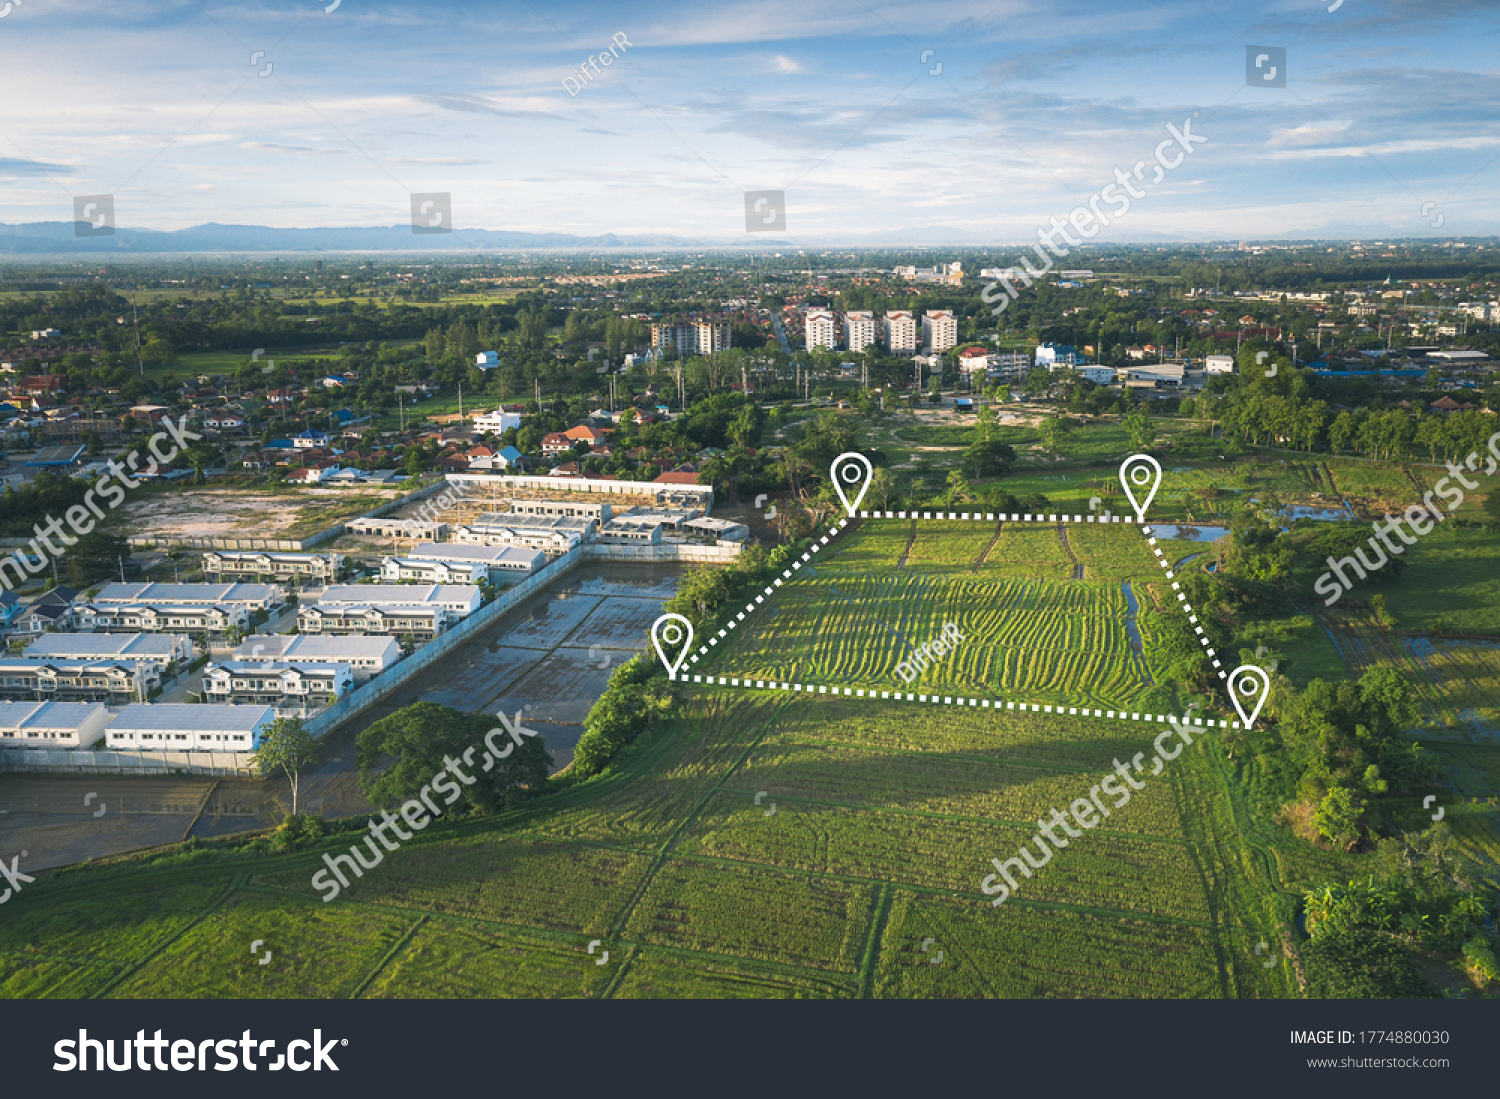 Land plot in aerial view. Include landscape, real estate, green field, agricultural plant, pin location icon. For housing subdivision, residential, development, owned, sale, rent, buy or investment. #1774880030